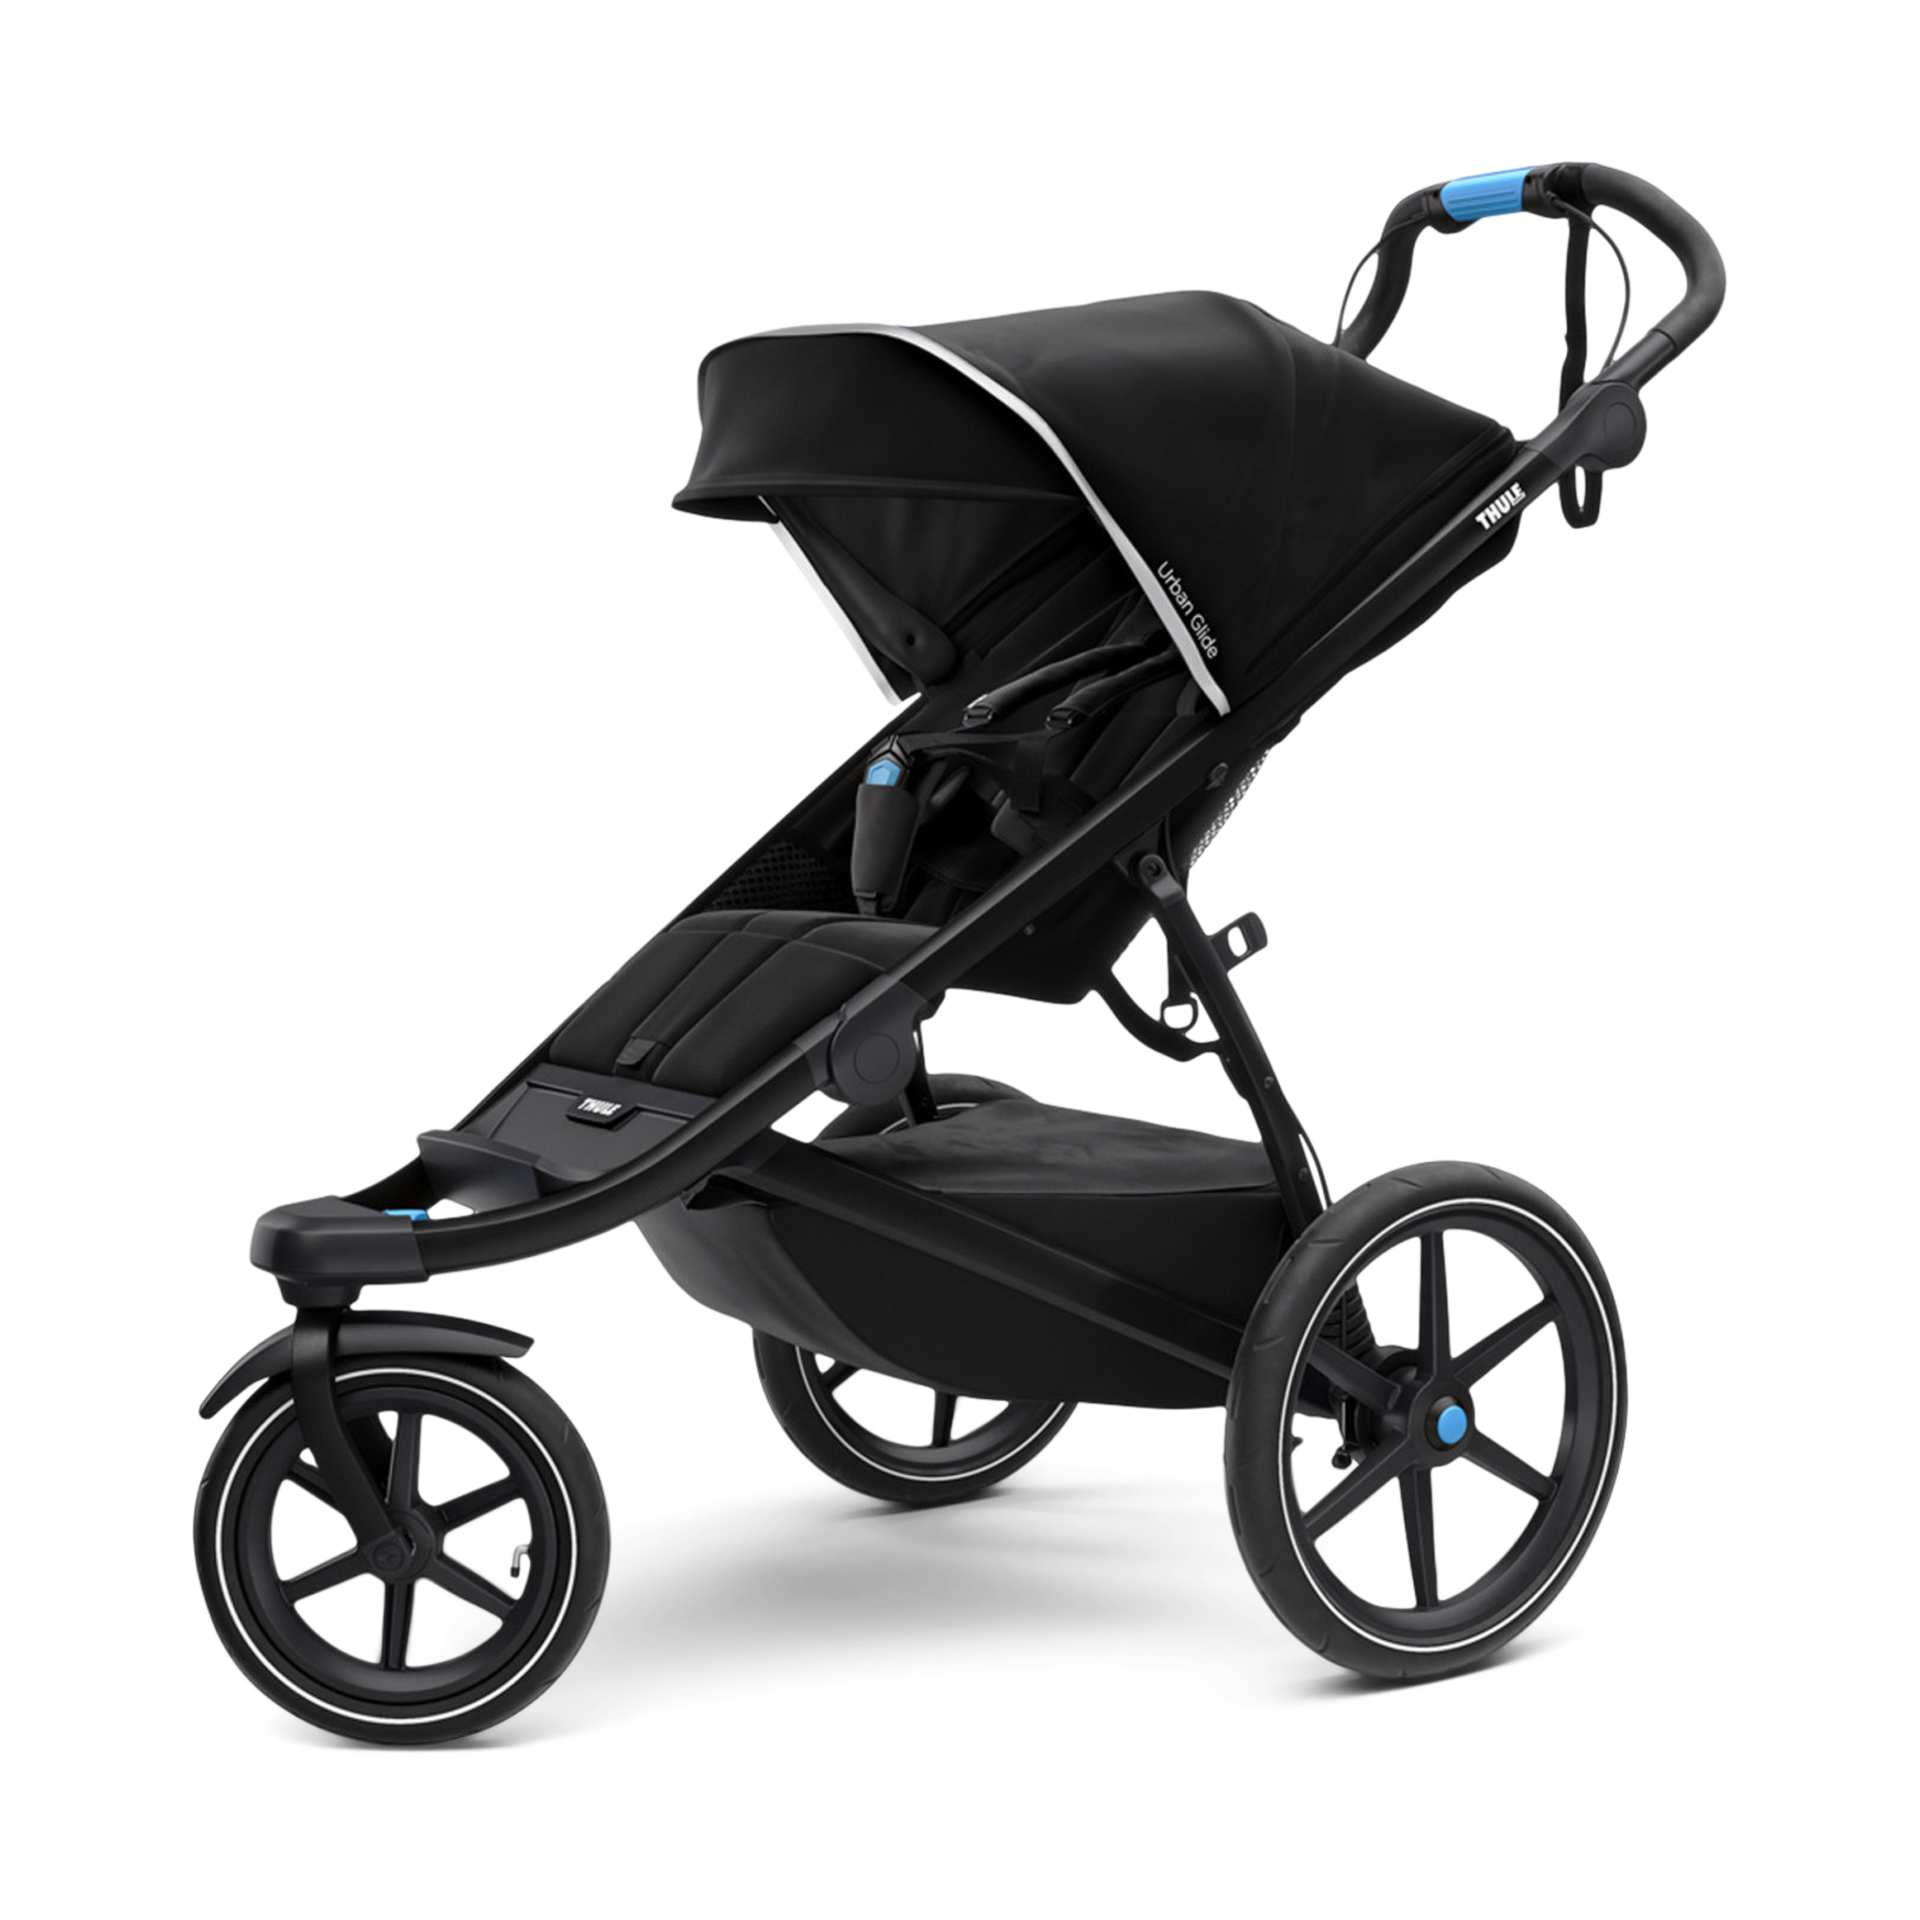 Four Wheels Stroller Absorbering Portable Two-way Push Cart For Four Seasons Use Travel Plus 2 Set And To Have A Long Life. Have An Inquiring Mind Baby Stroller Reclining Lightweight Folding Shock